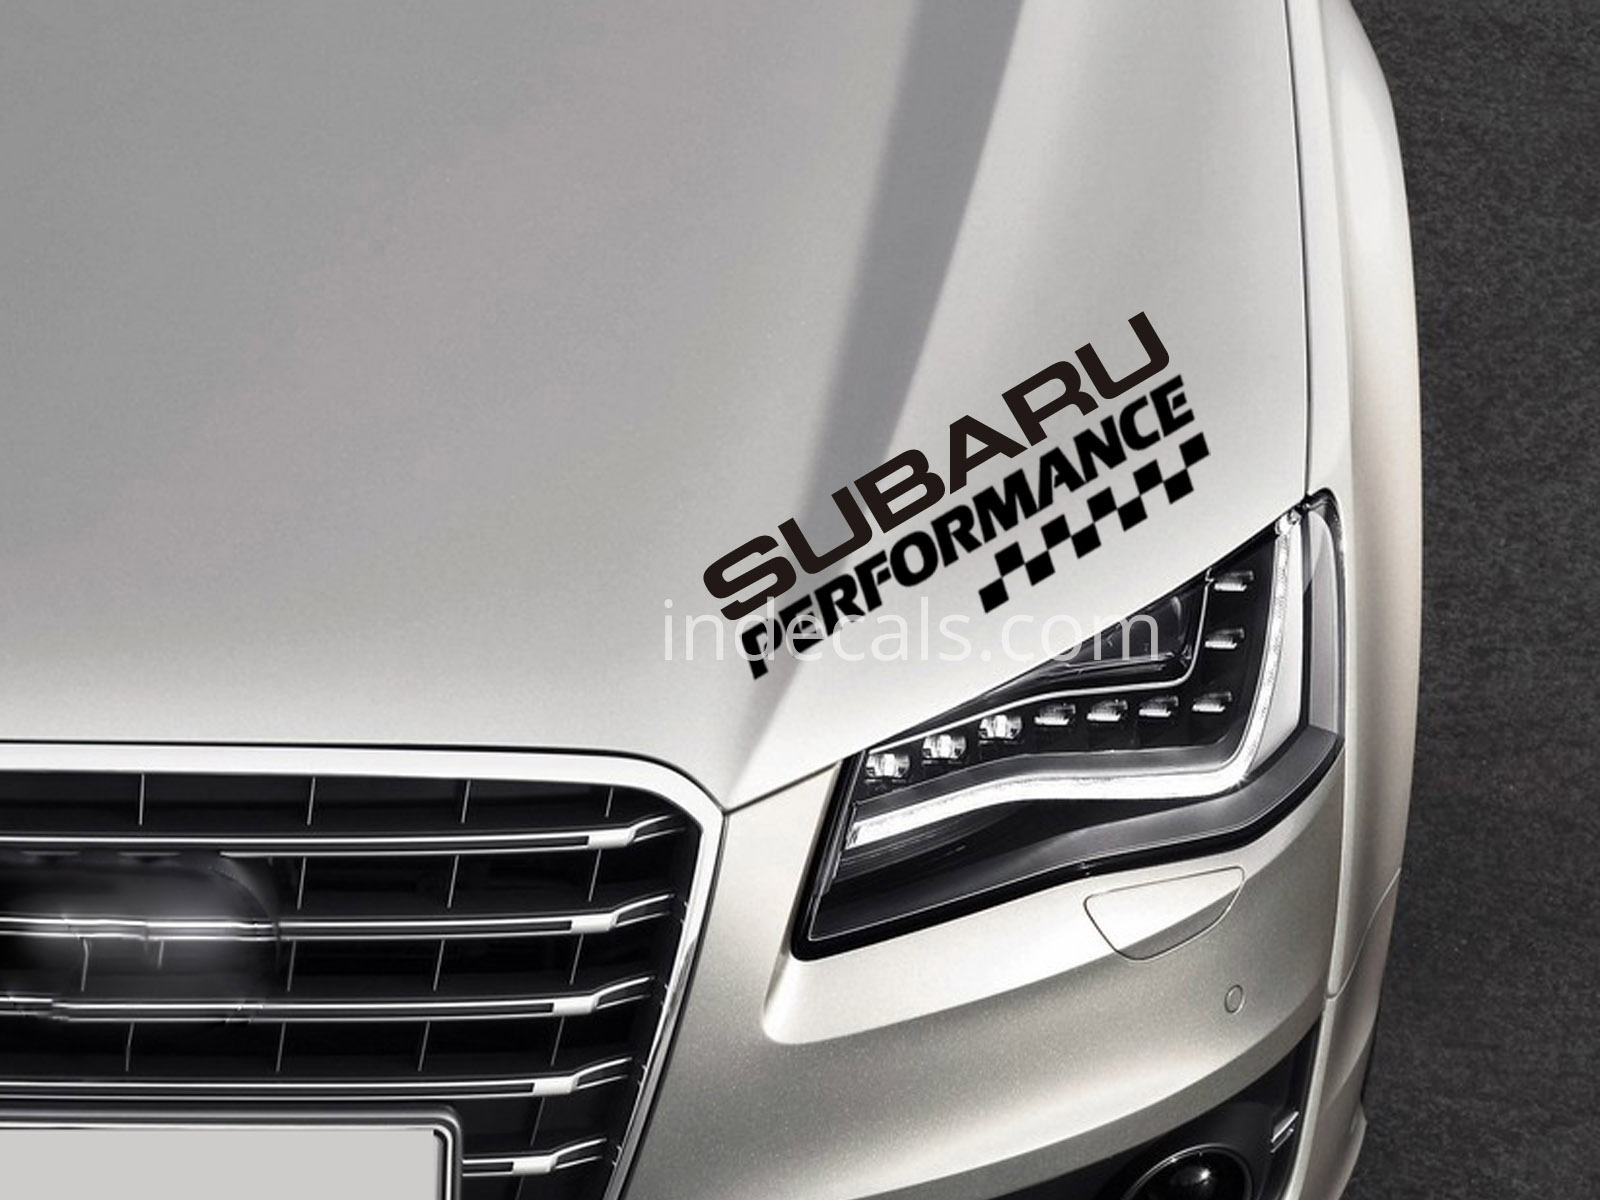 1 x Subaru Performance Sticker - Black